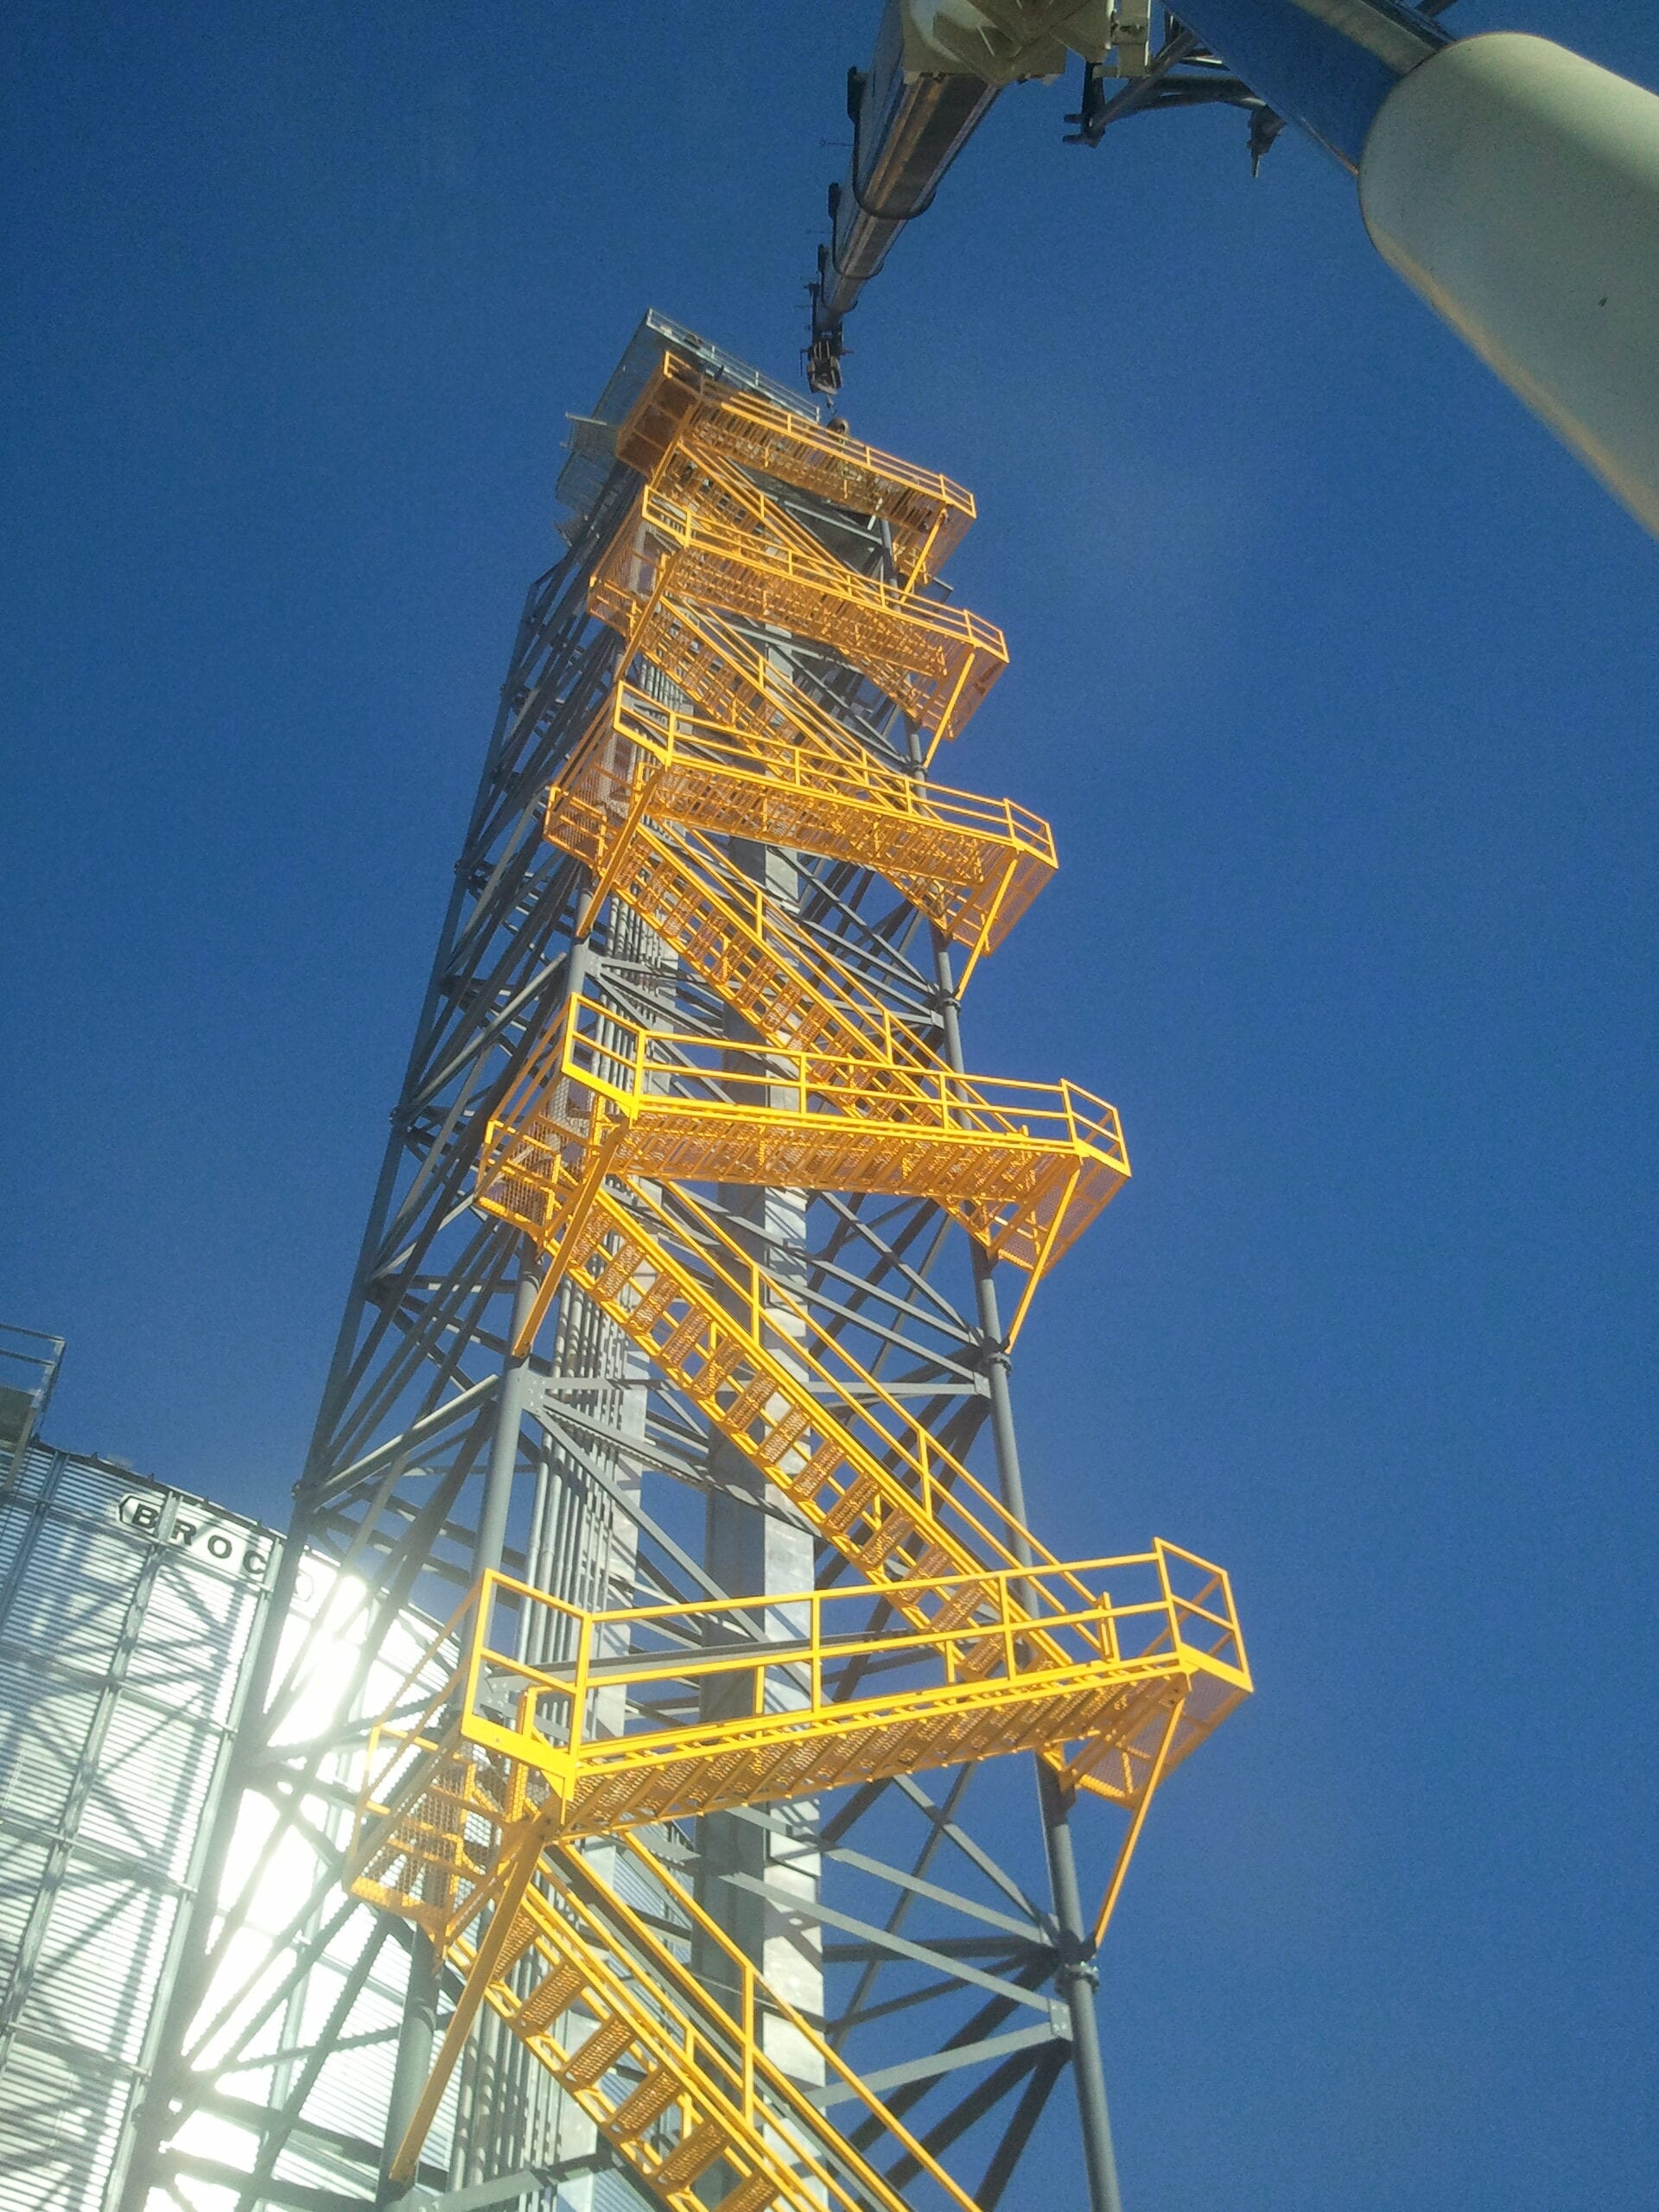 reif welding and construction site